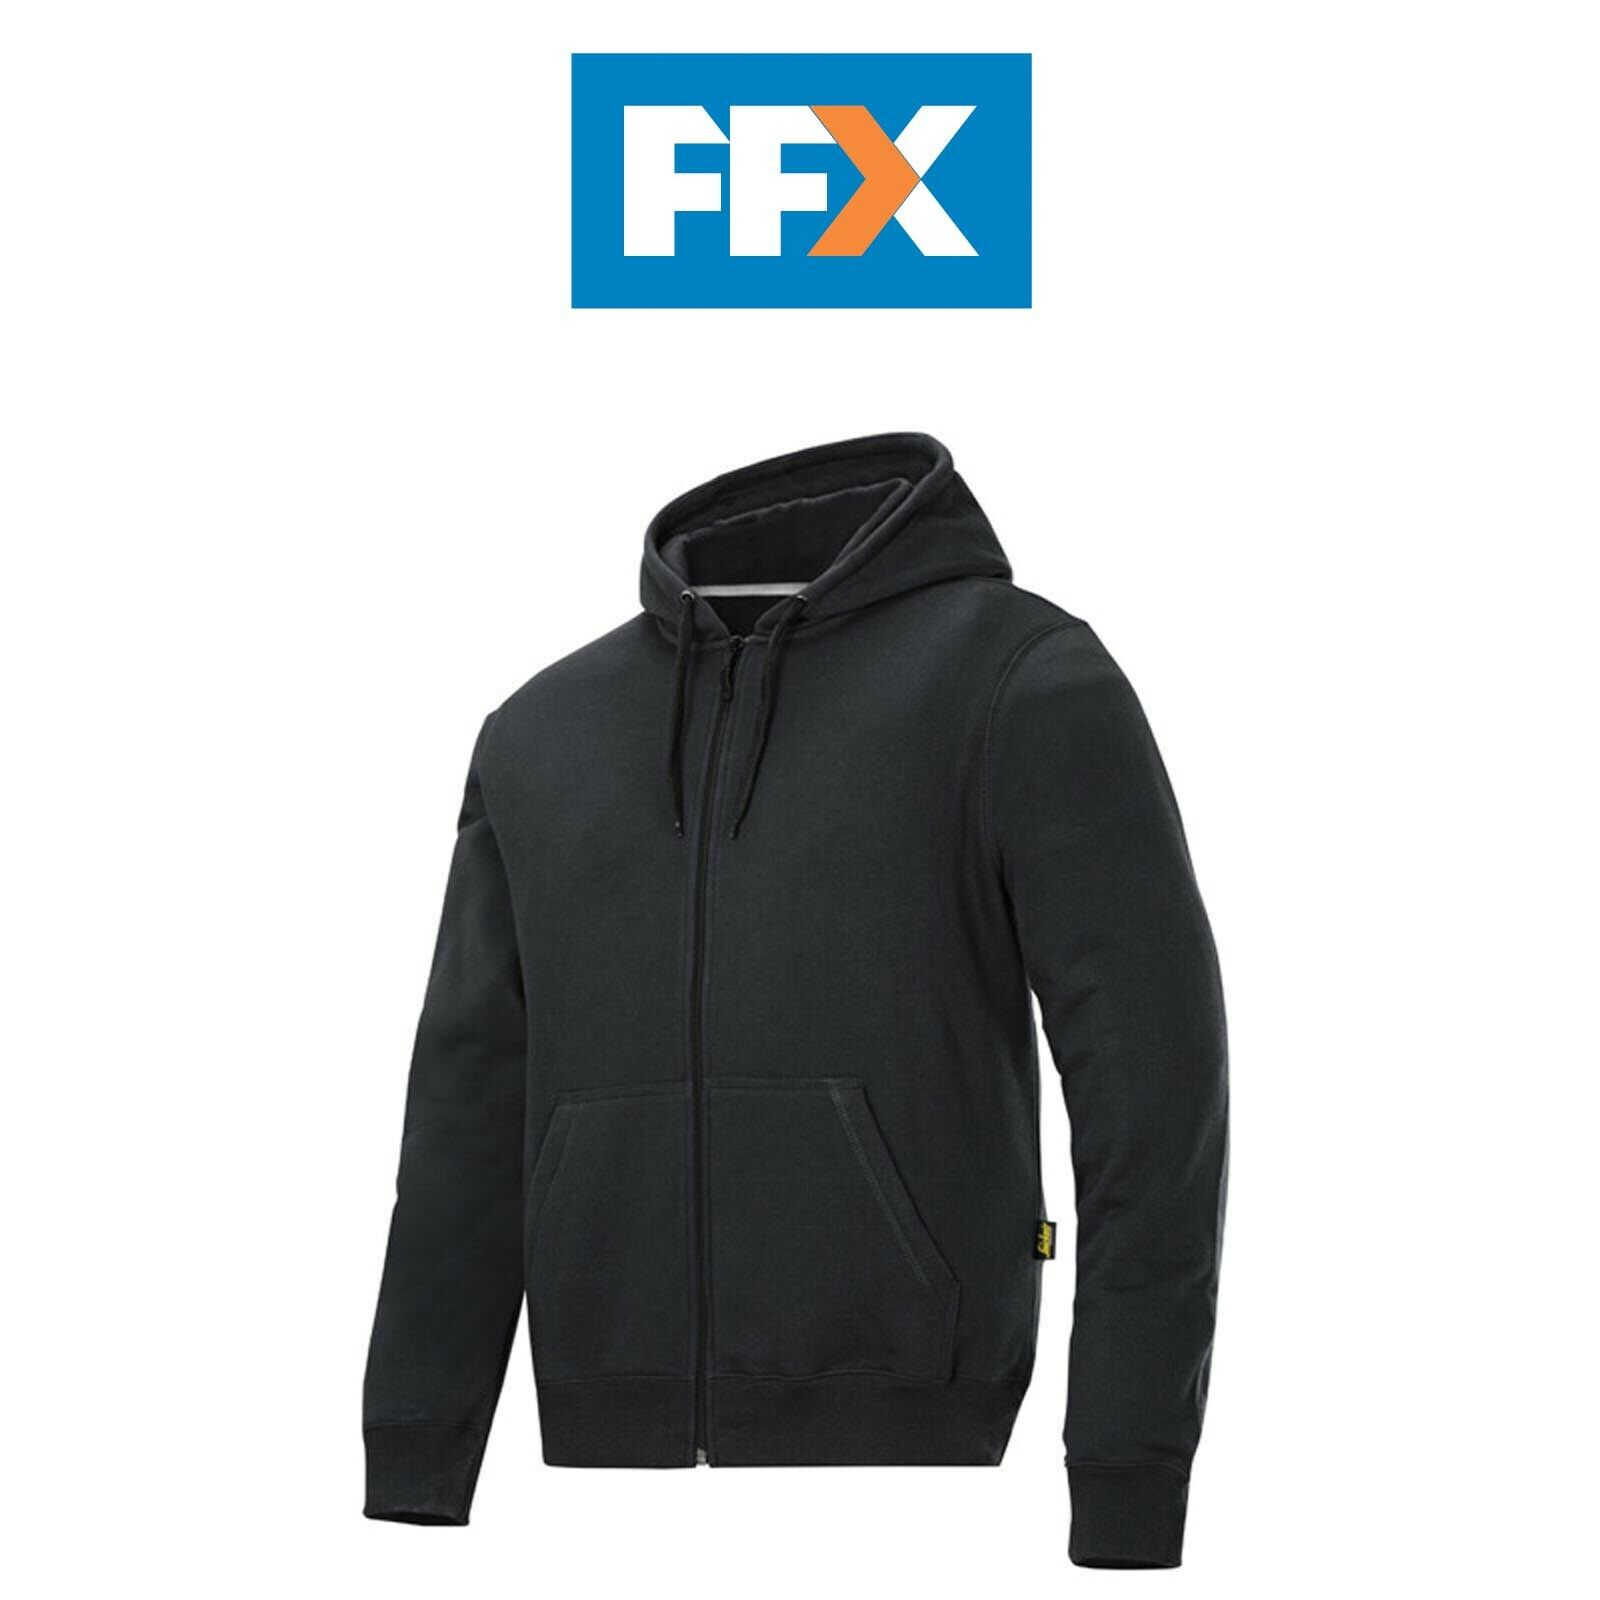 Snickers 2801 Zipped Hoodie with Front Pockets - Various Größes